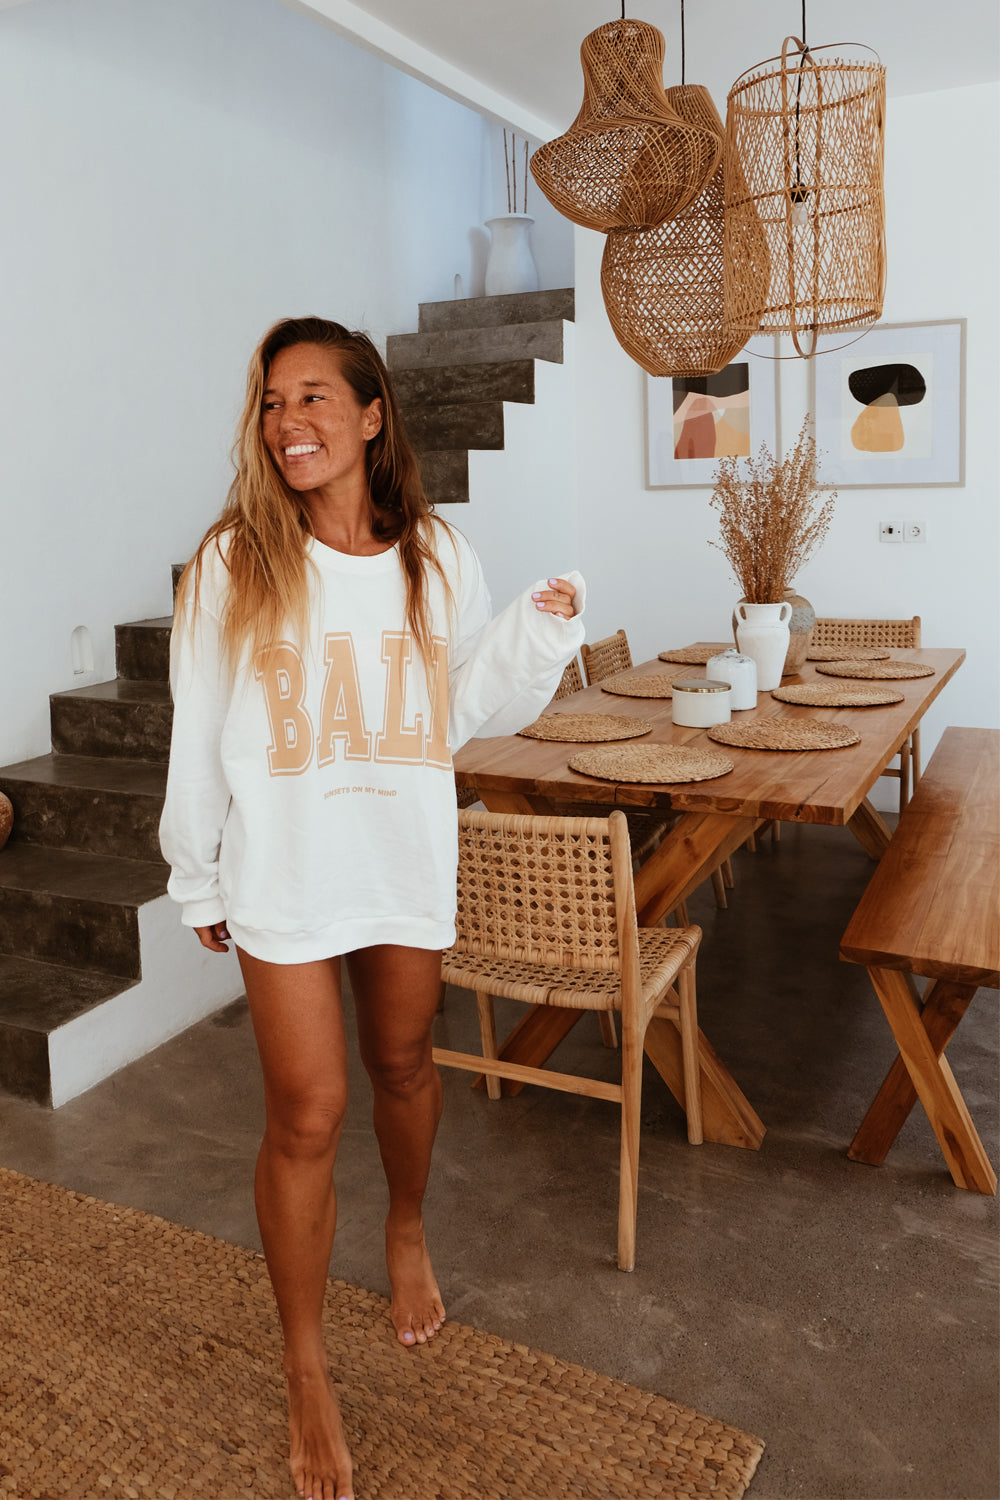 The BALI Sweater